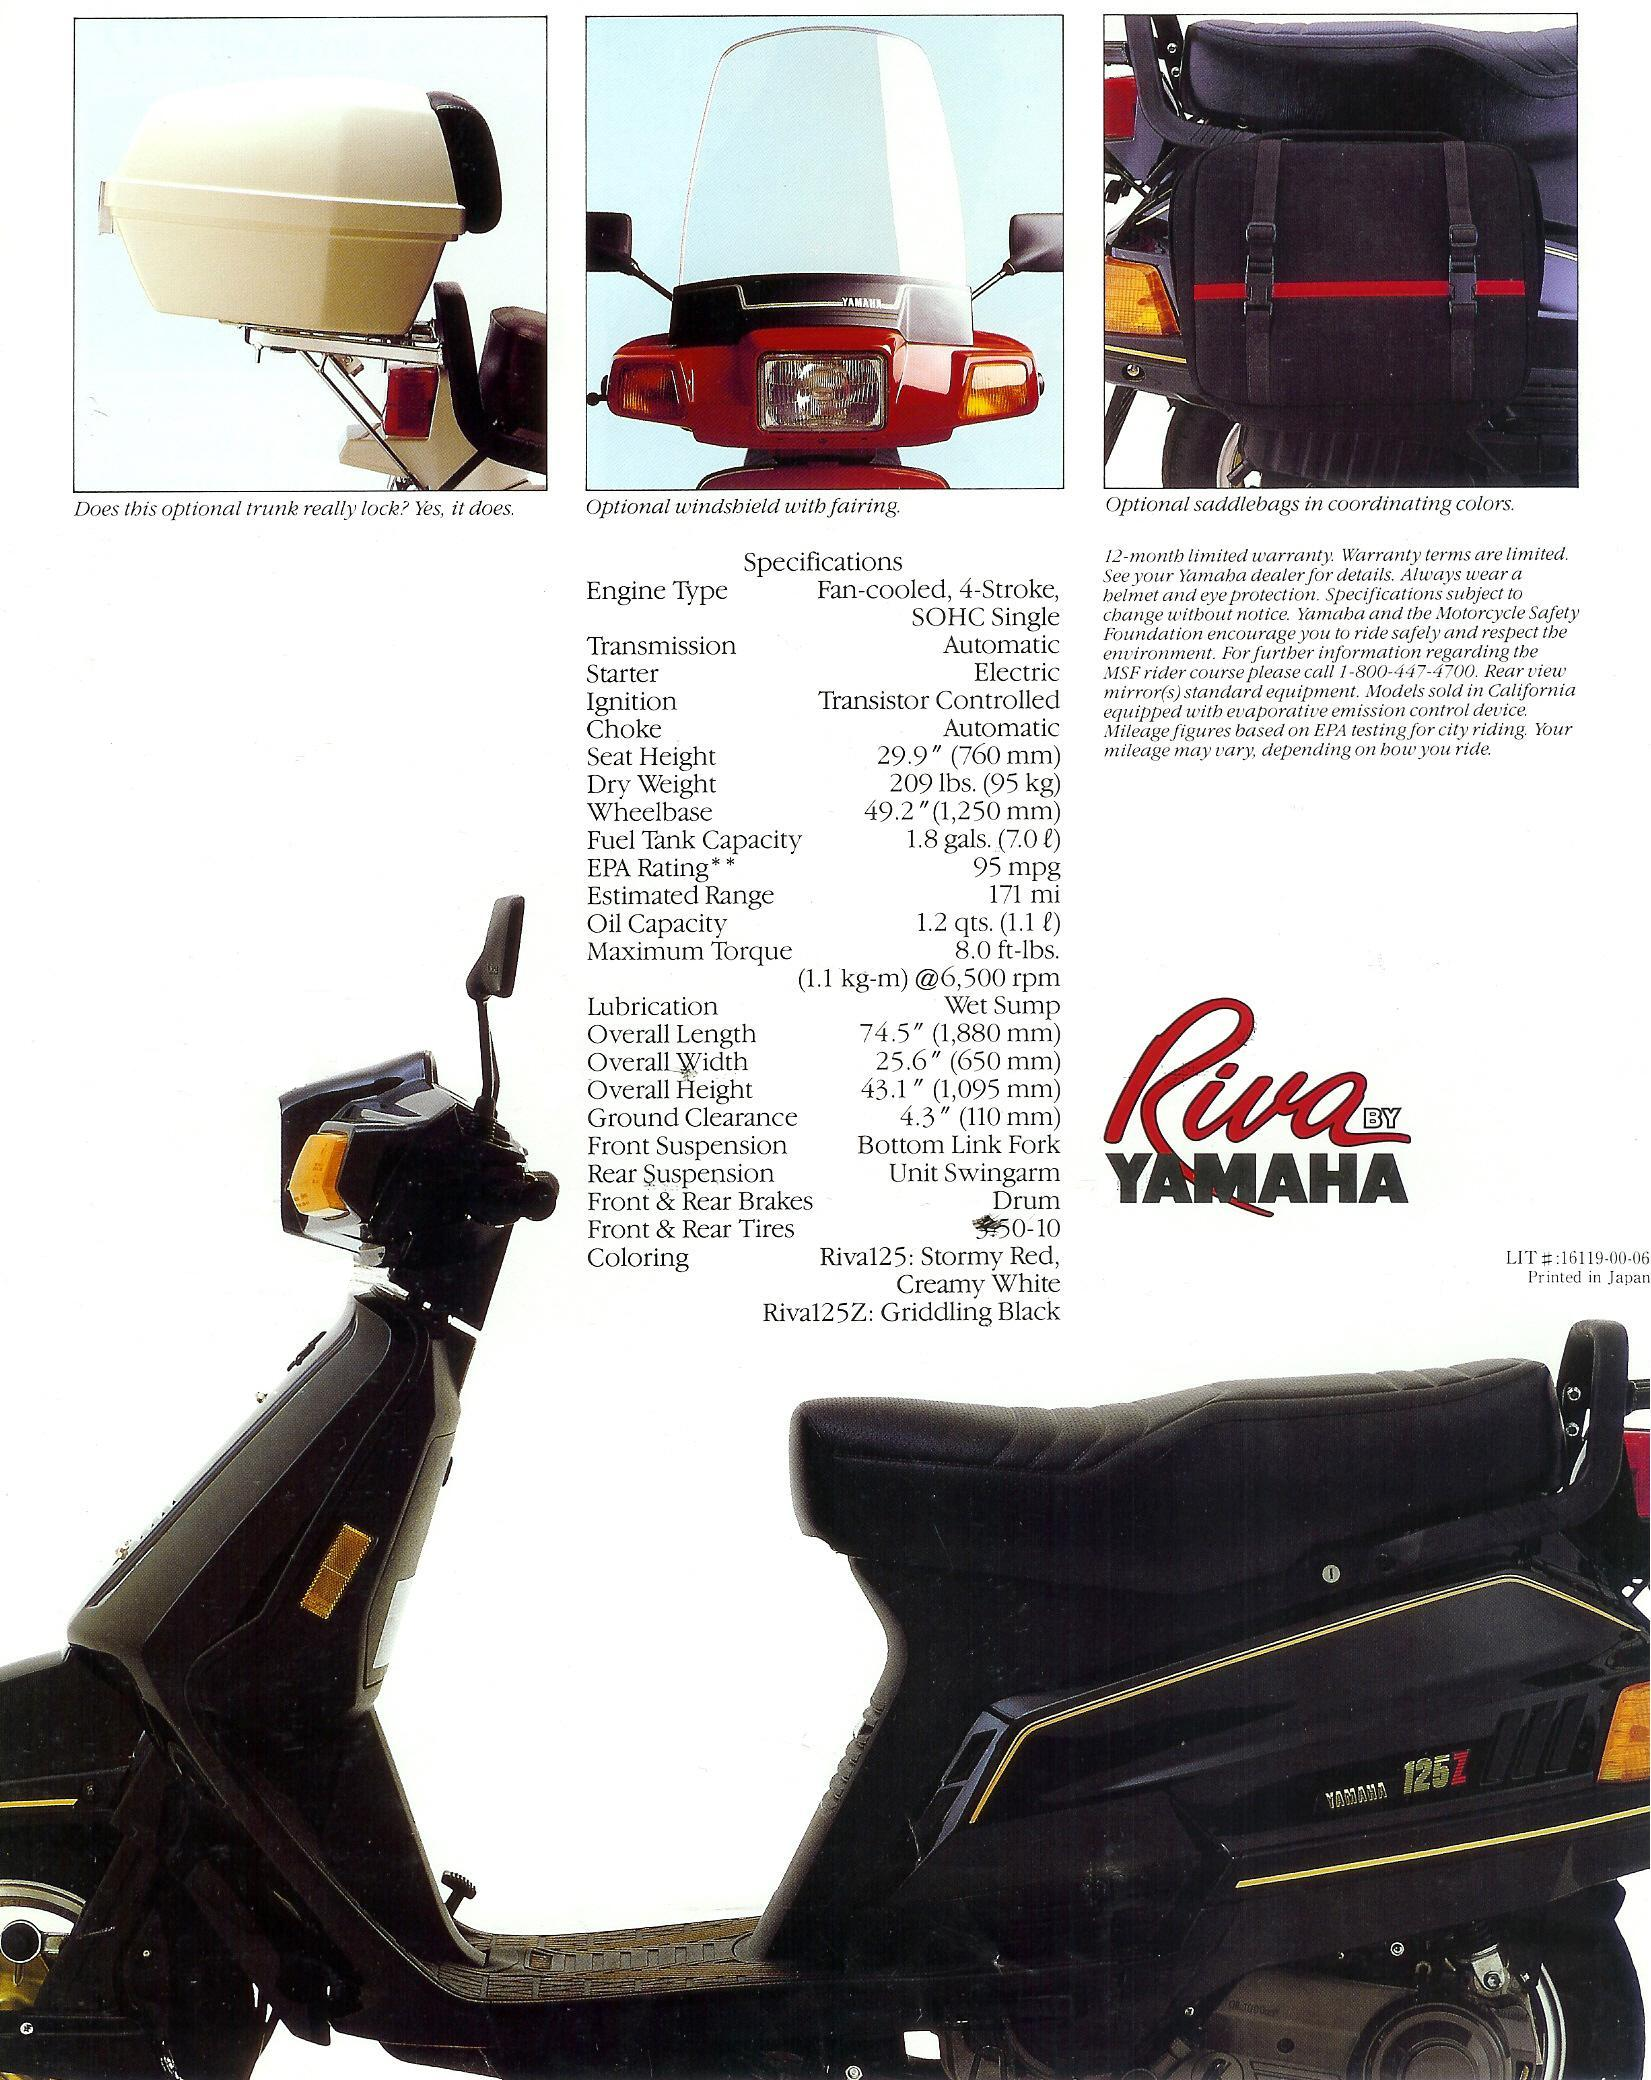 General Yamaha Scooter Information